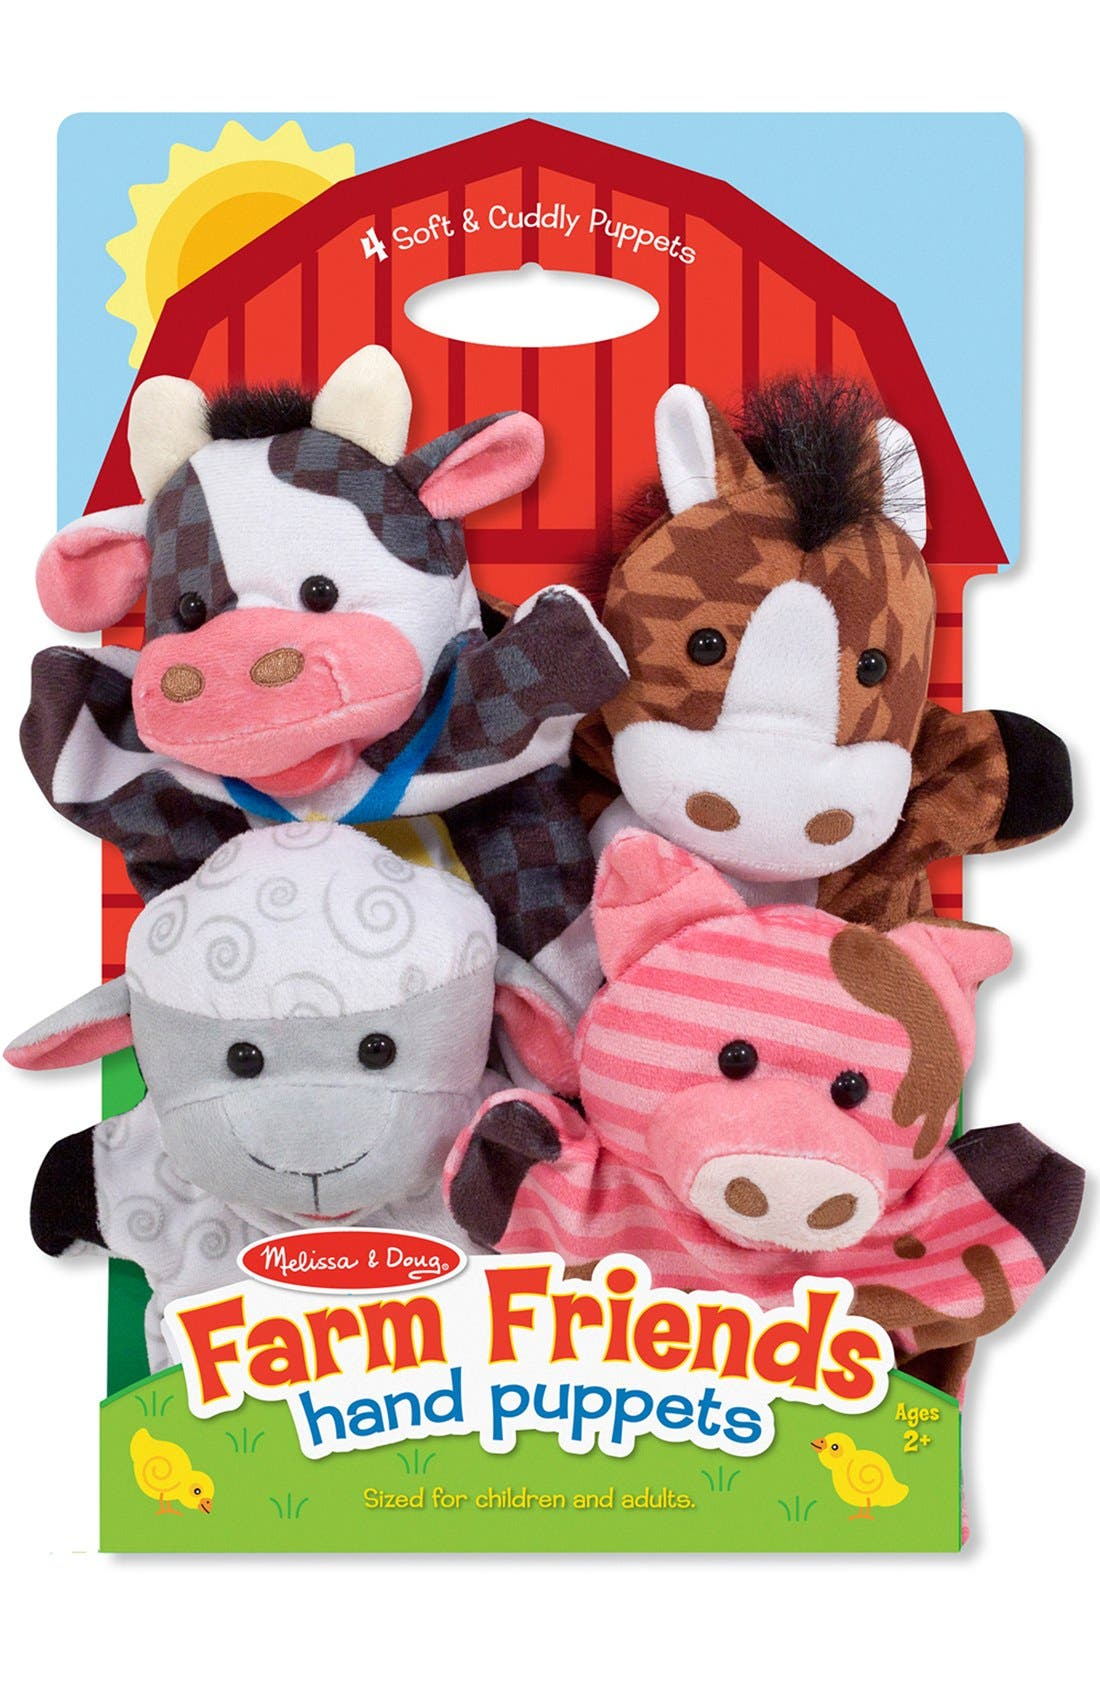 MELISSA & DOUG 'Farm Friends' Hand Puppets